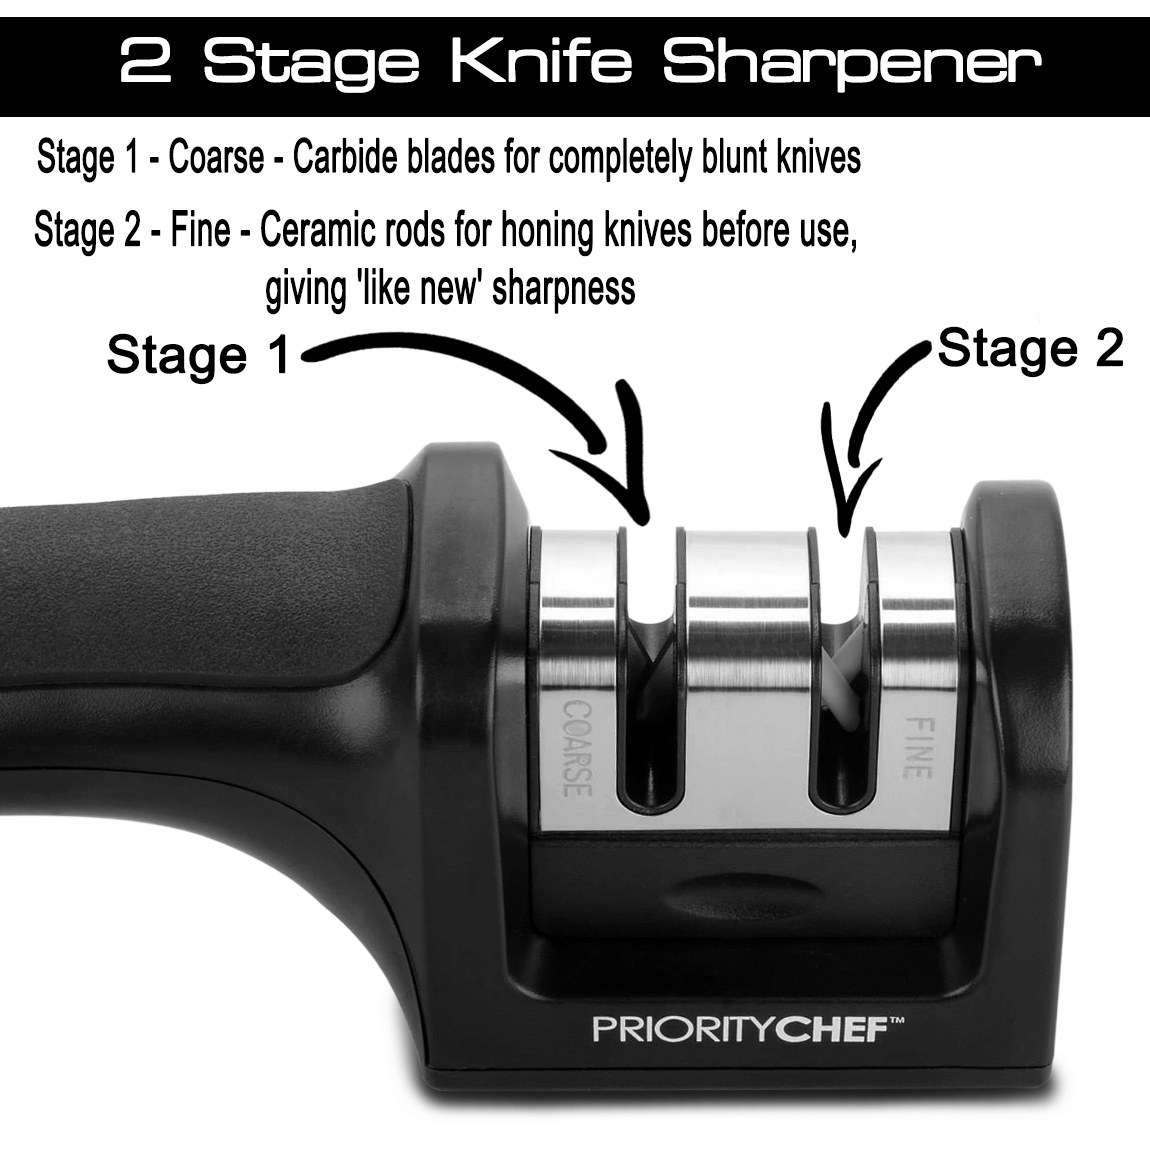 Kitchen Devil Knife Sharpener How To Use Prioritychef Knife Sharpener Review Living A Sunshine Life